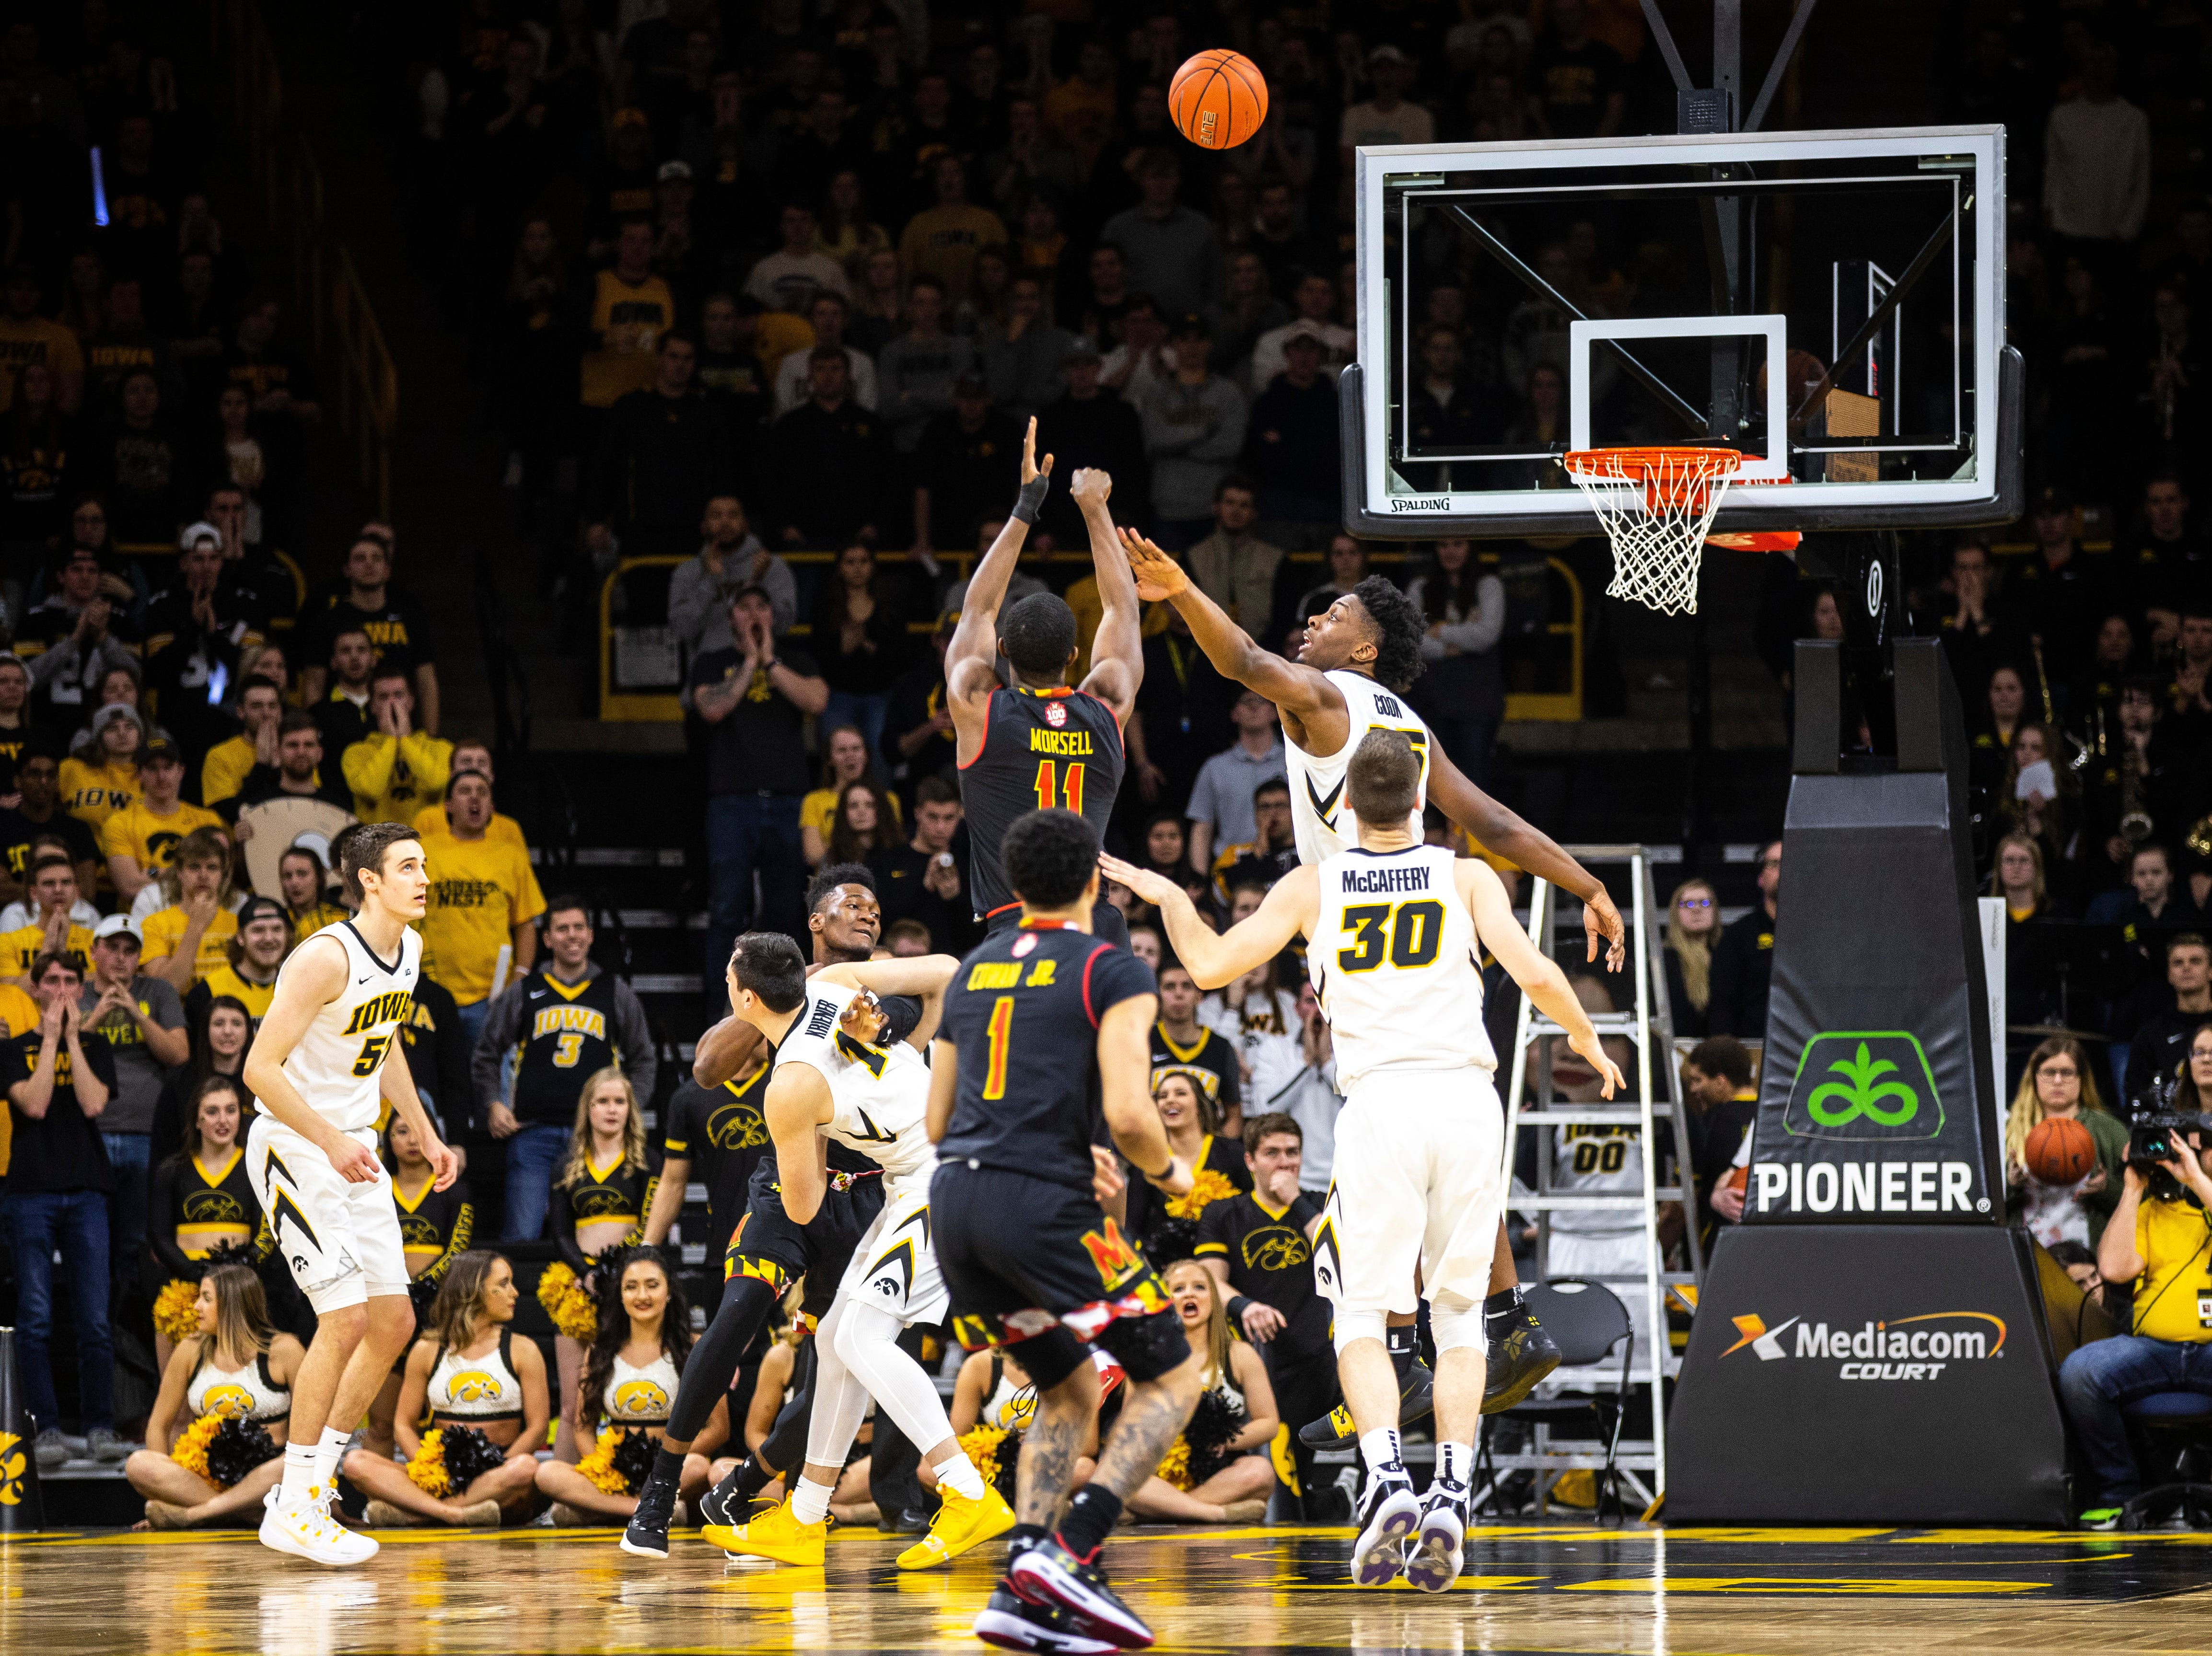 Maryland guard Darryl Morsell (11) shoots a basket while Iowa forward Tyler Cook (25) defend during a NCAA Big Ten Conference men's basketball game on Tuesday, Feb. 19, 2019 at Carver-Hawkeye Arena in Iowa City, Iowa.